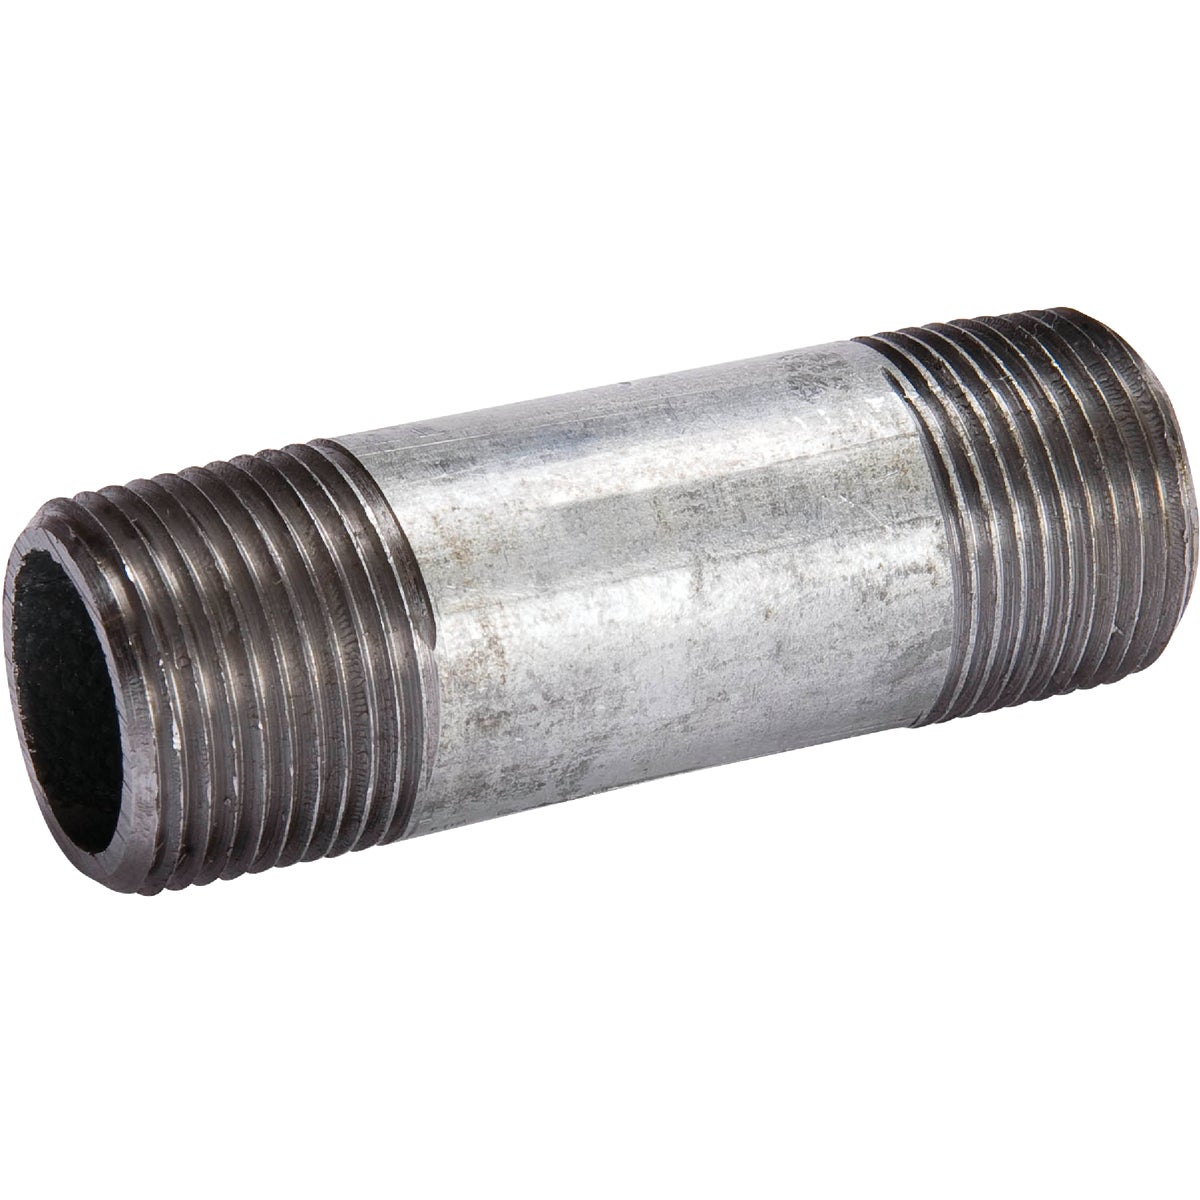 1/4X4 GALV NIPPLE - 10206 by Southland Pipe Nippl